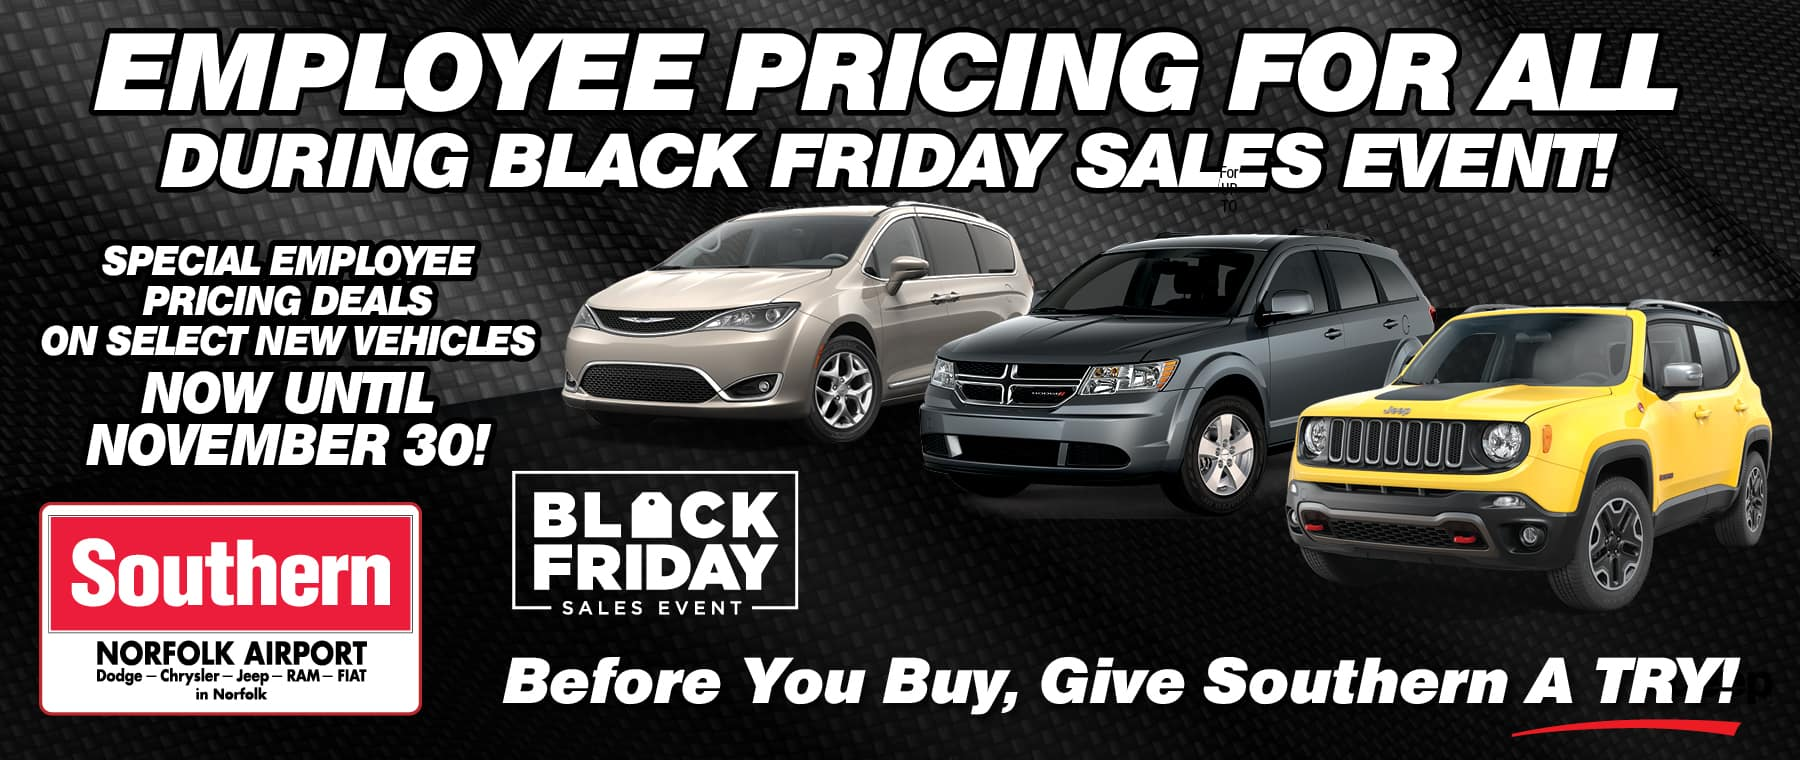 Employee Pricing Southern Dodge November